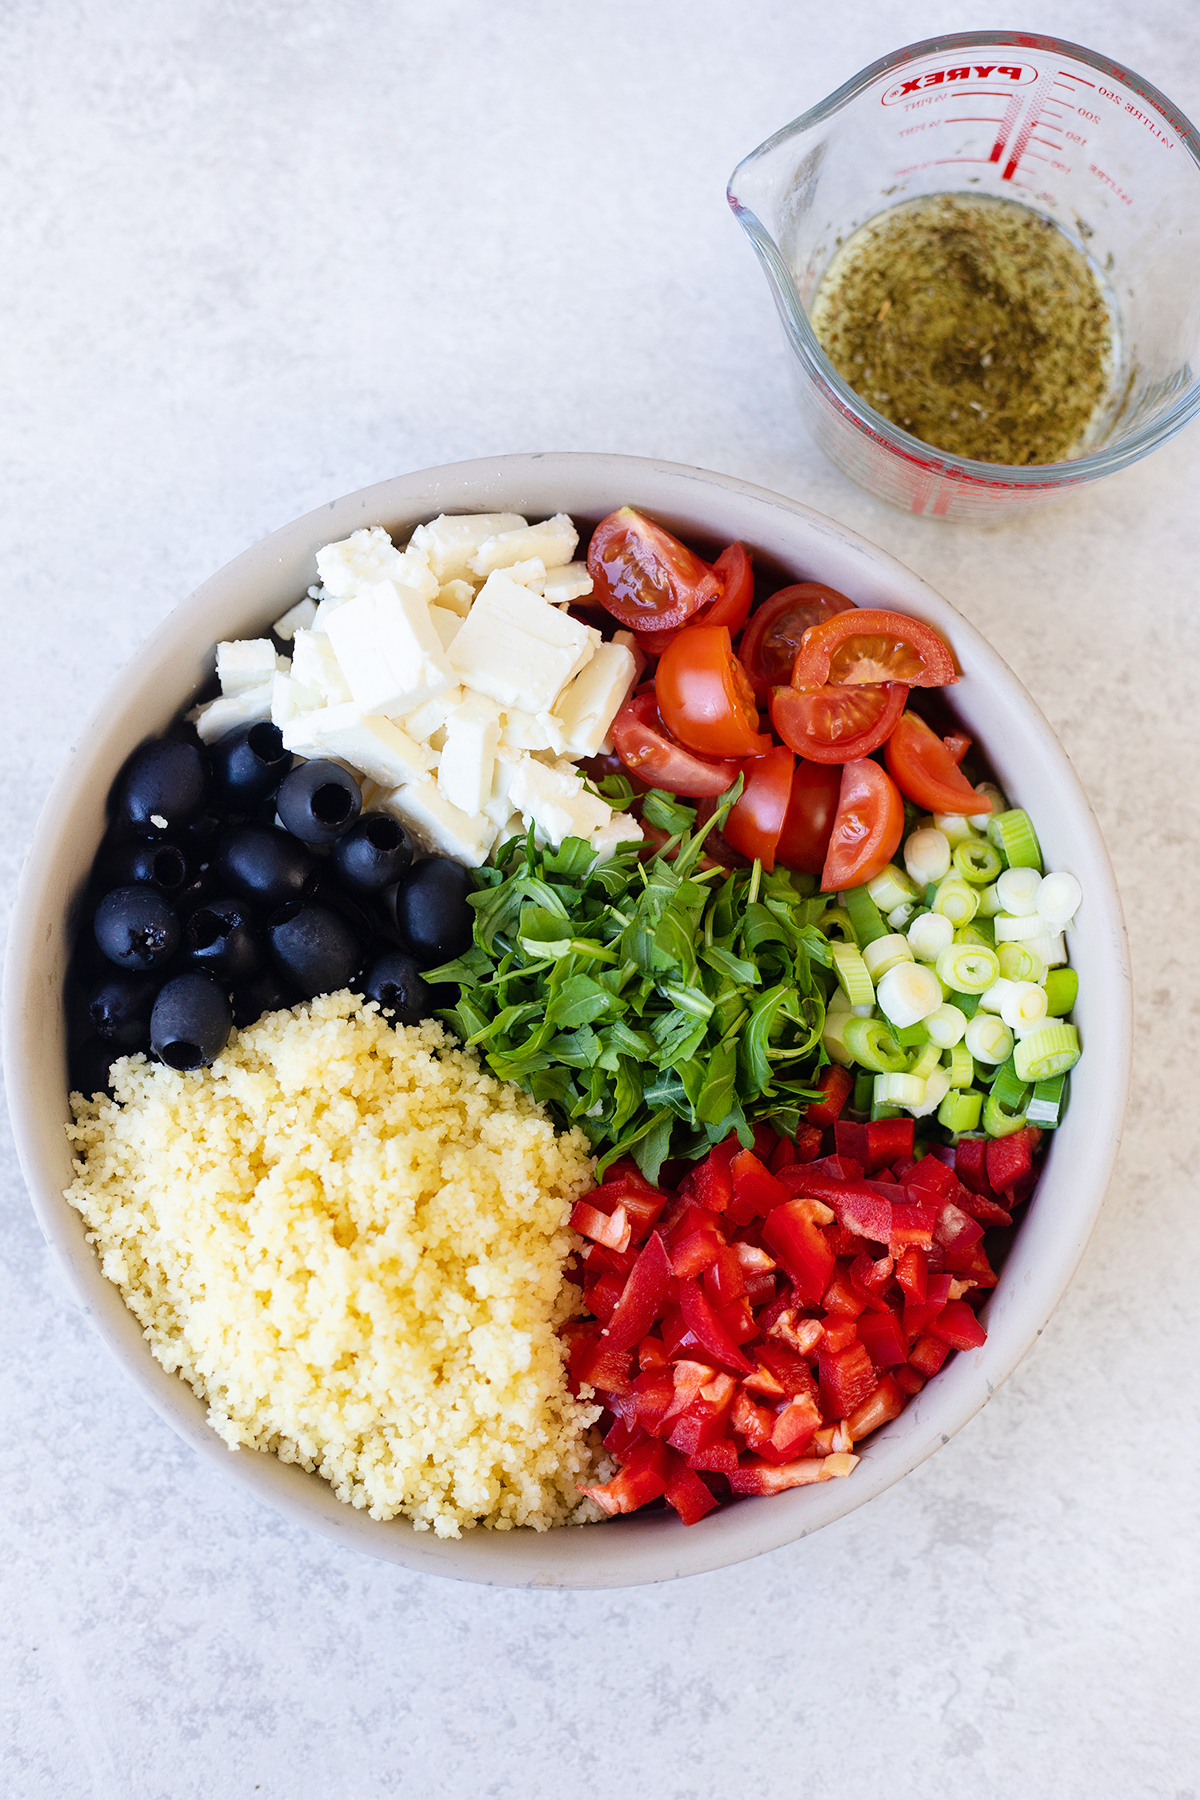 Mediterranean couscous salad is such a simple couscous recipe